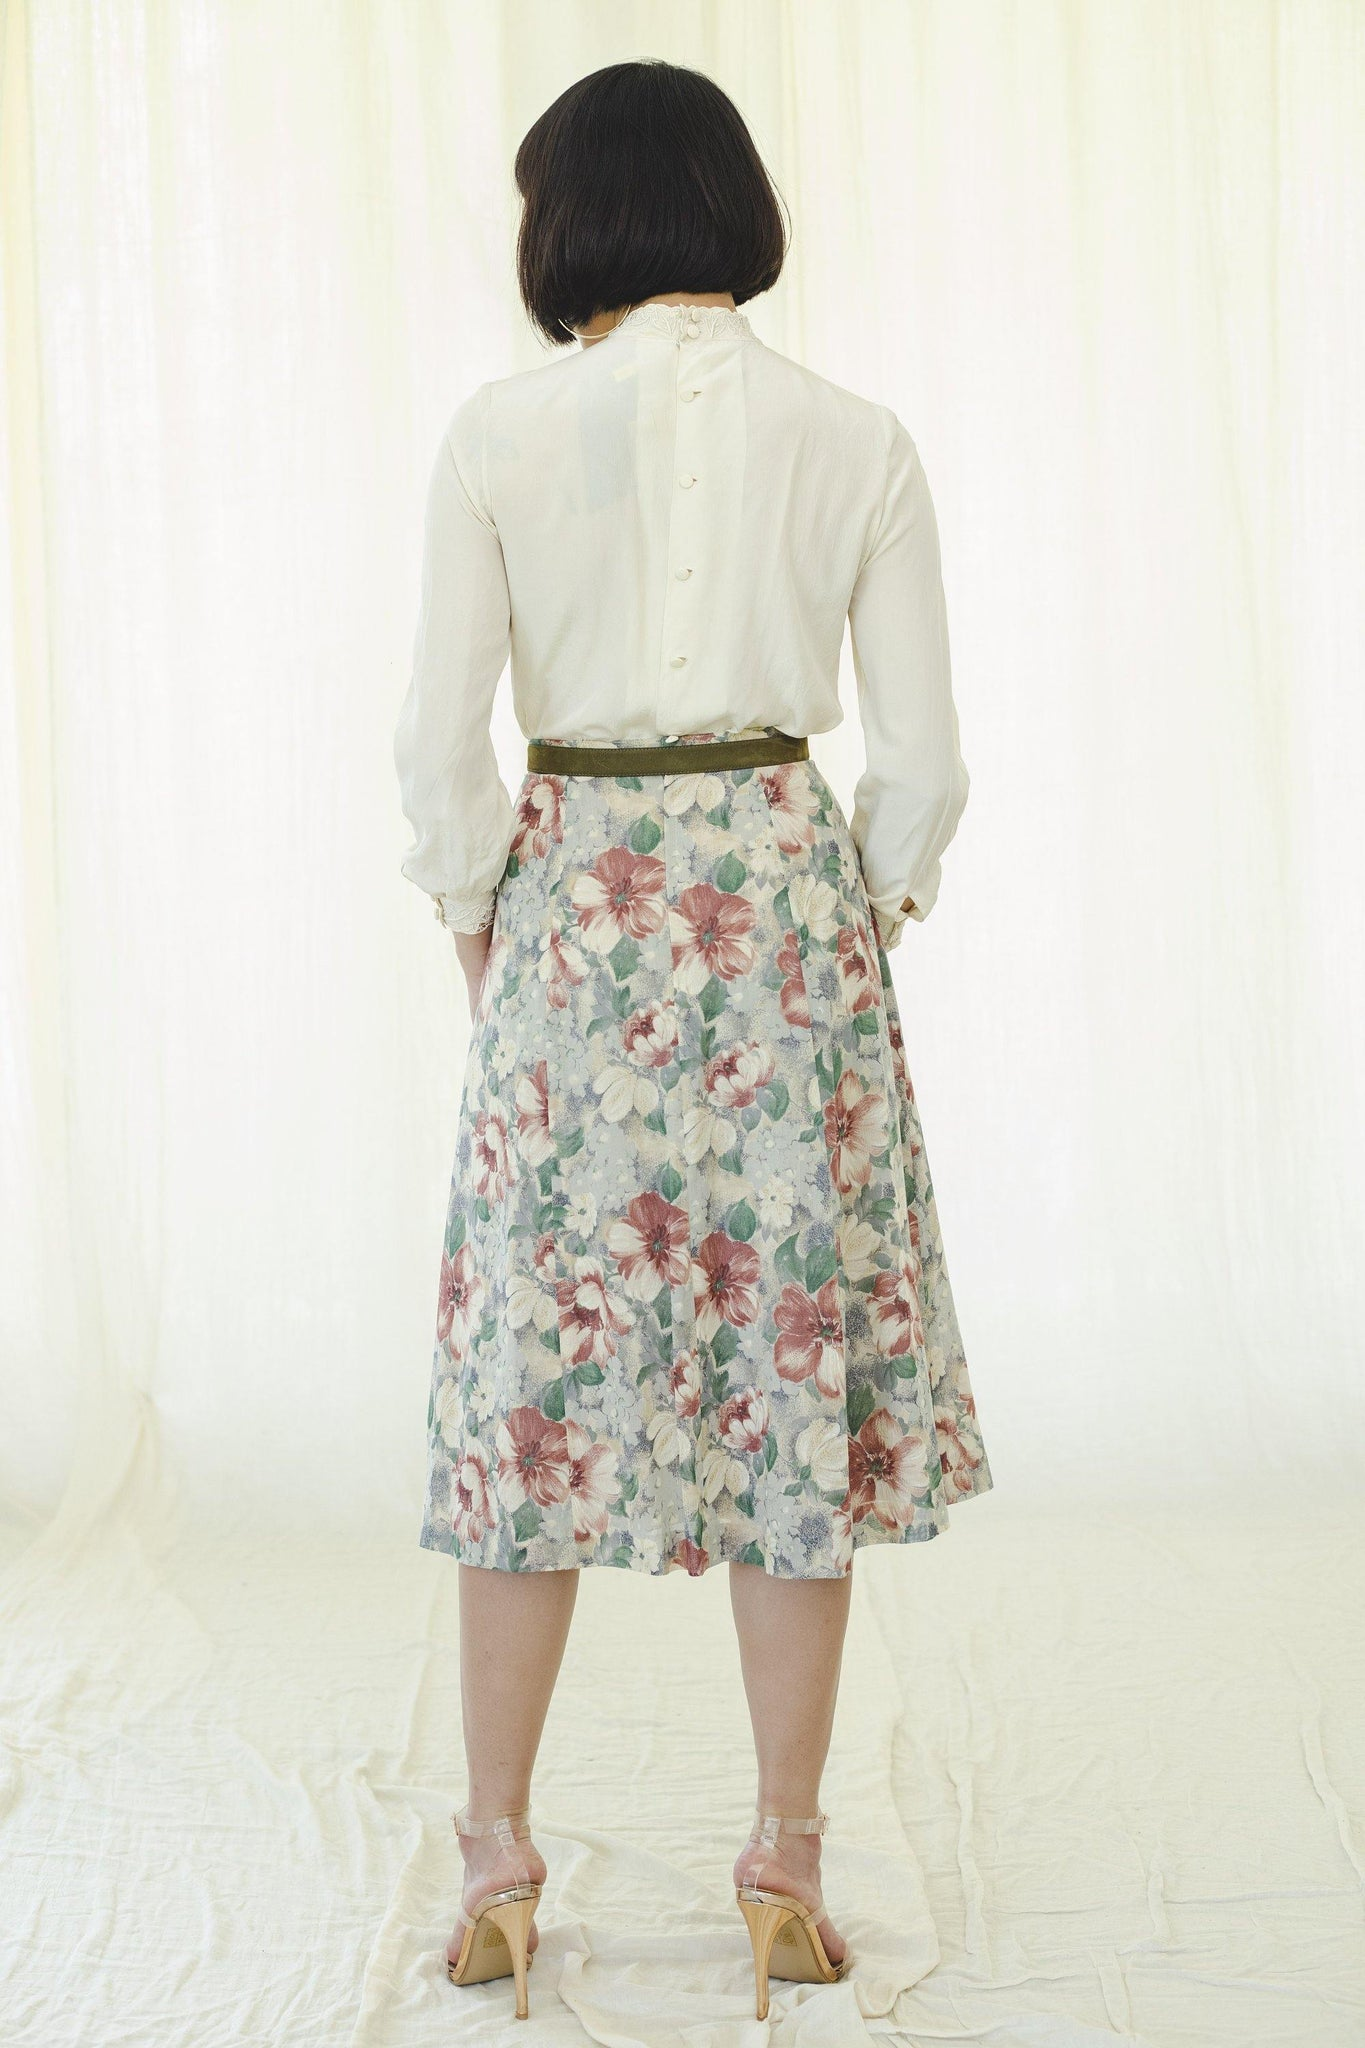 Vintage upcycled skirt from the 80s | Midi | Floral Print - Sugar & Cream Vintage